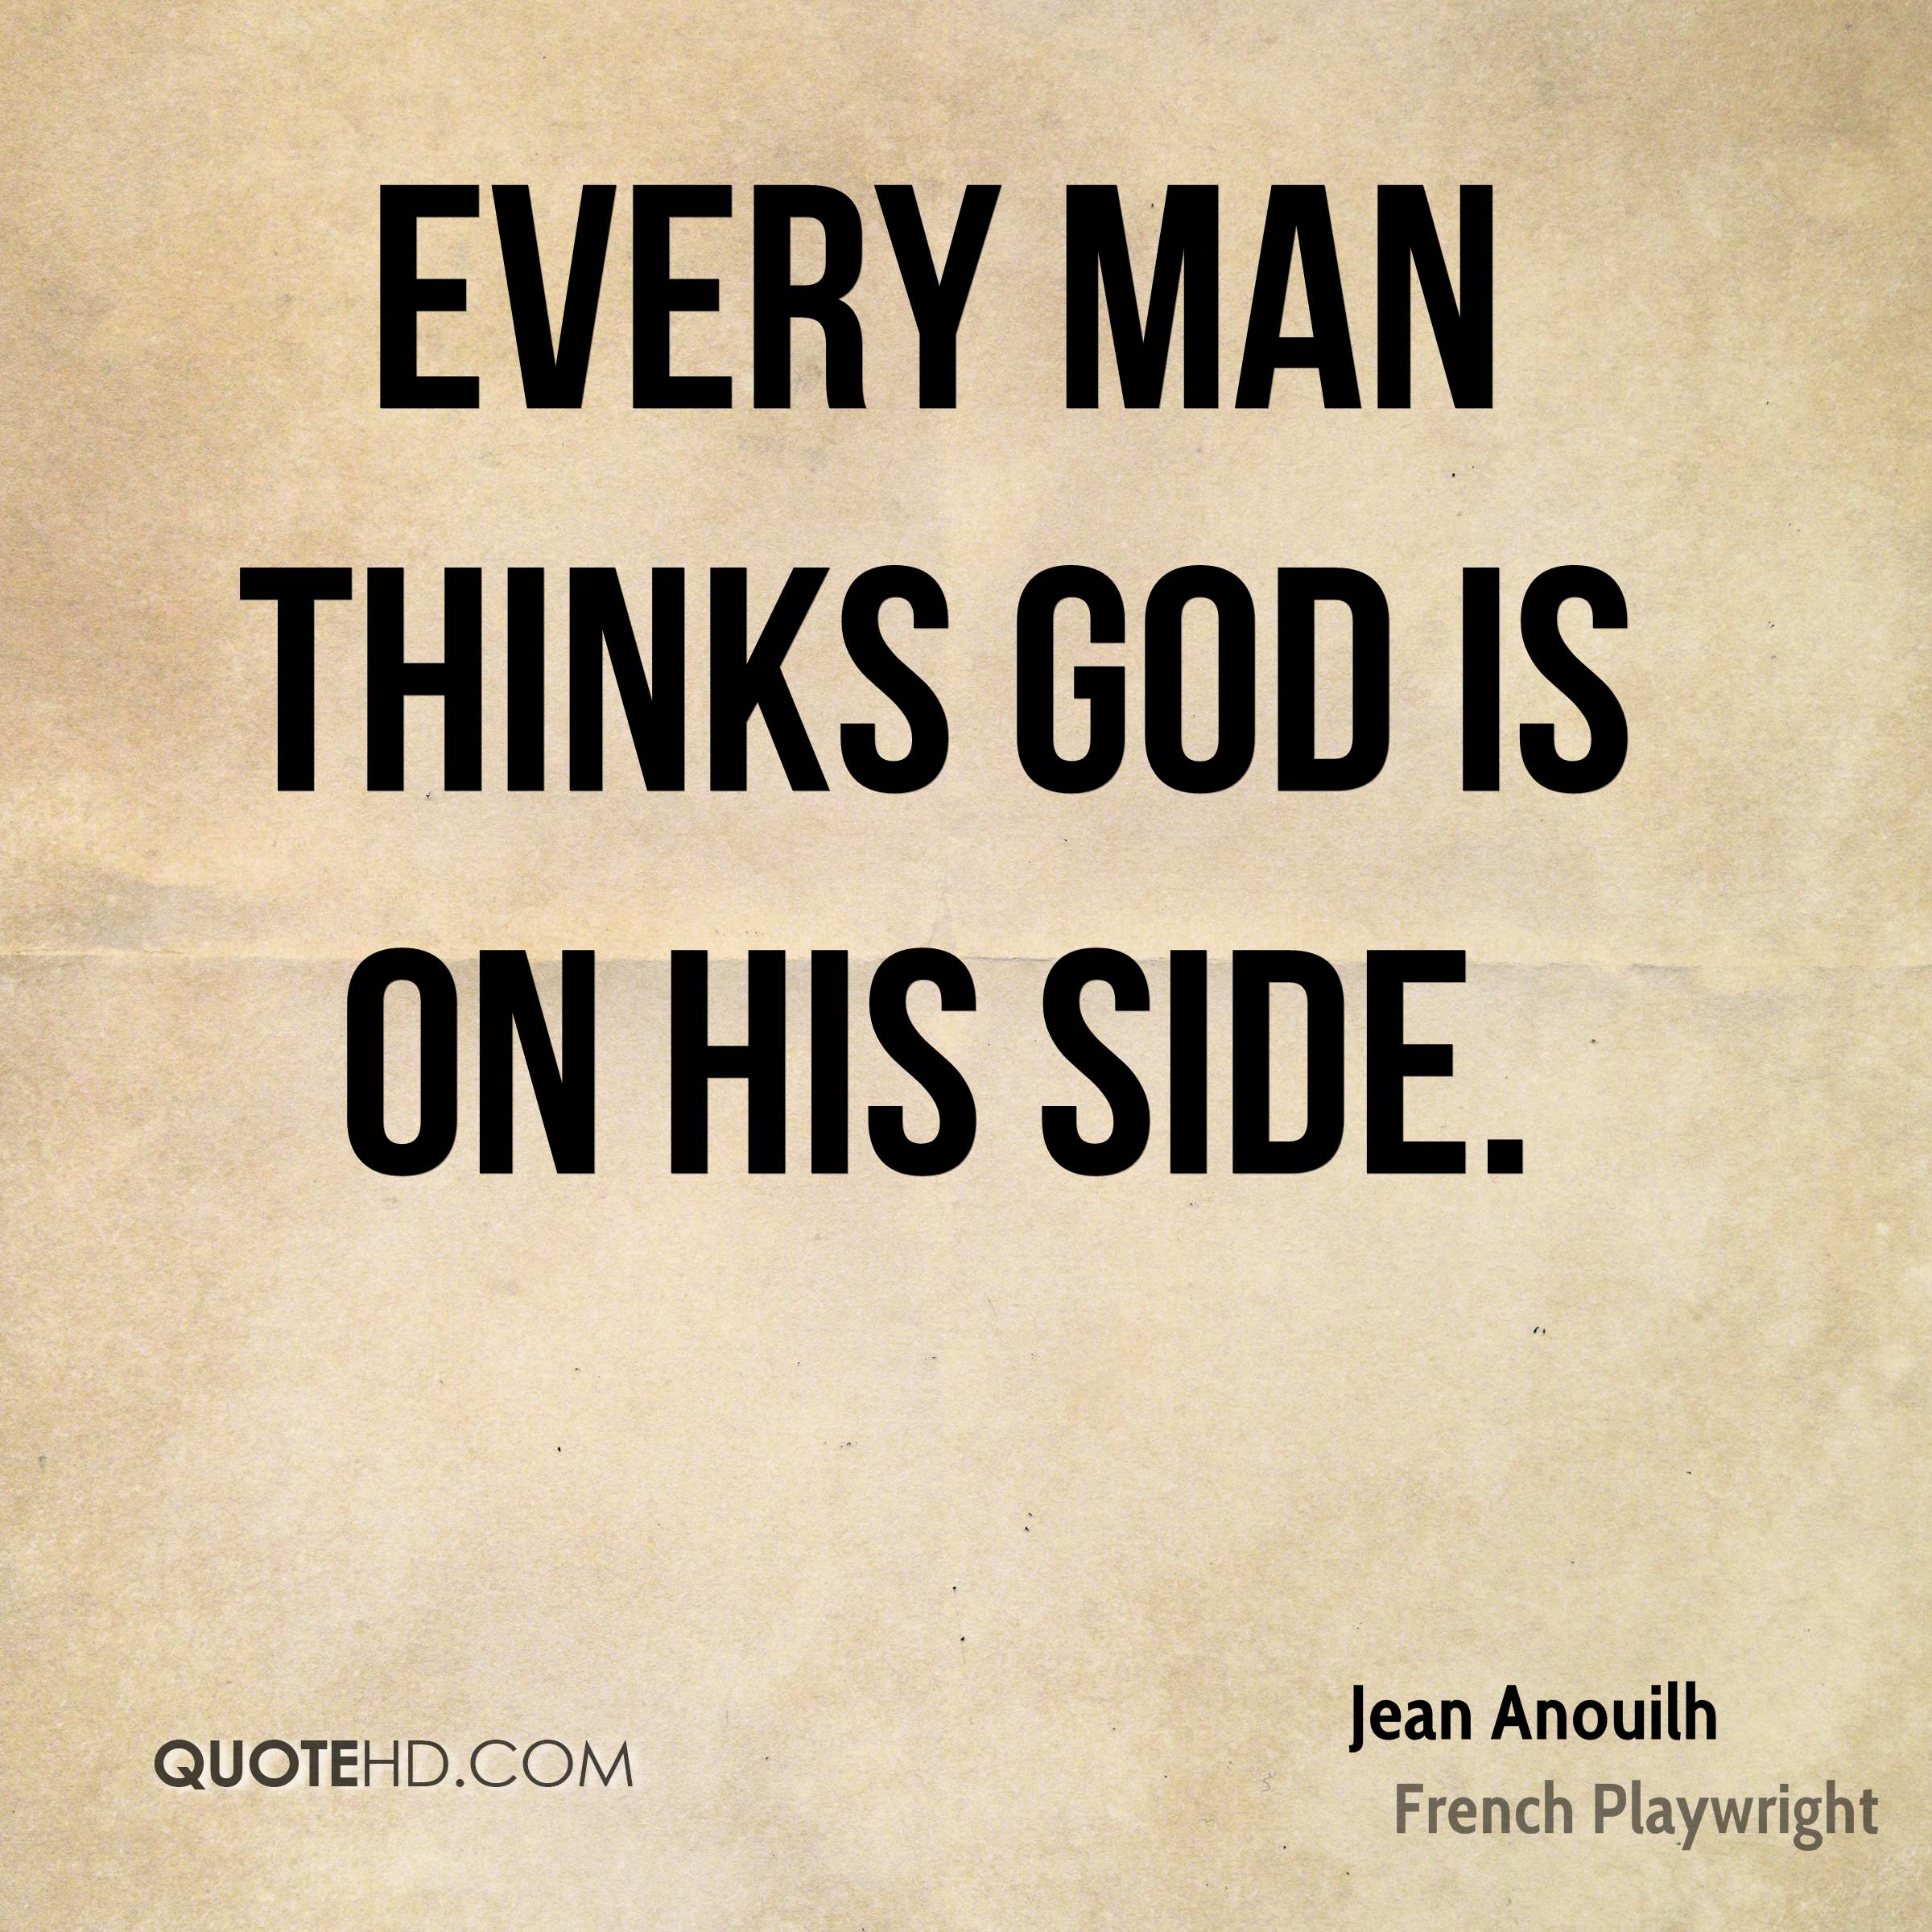 Every man thinks god is on his side.